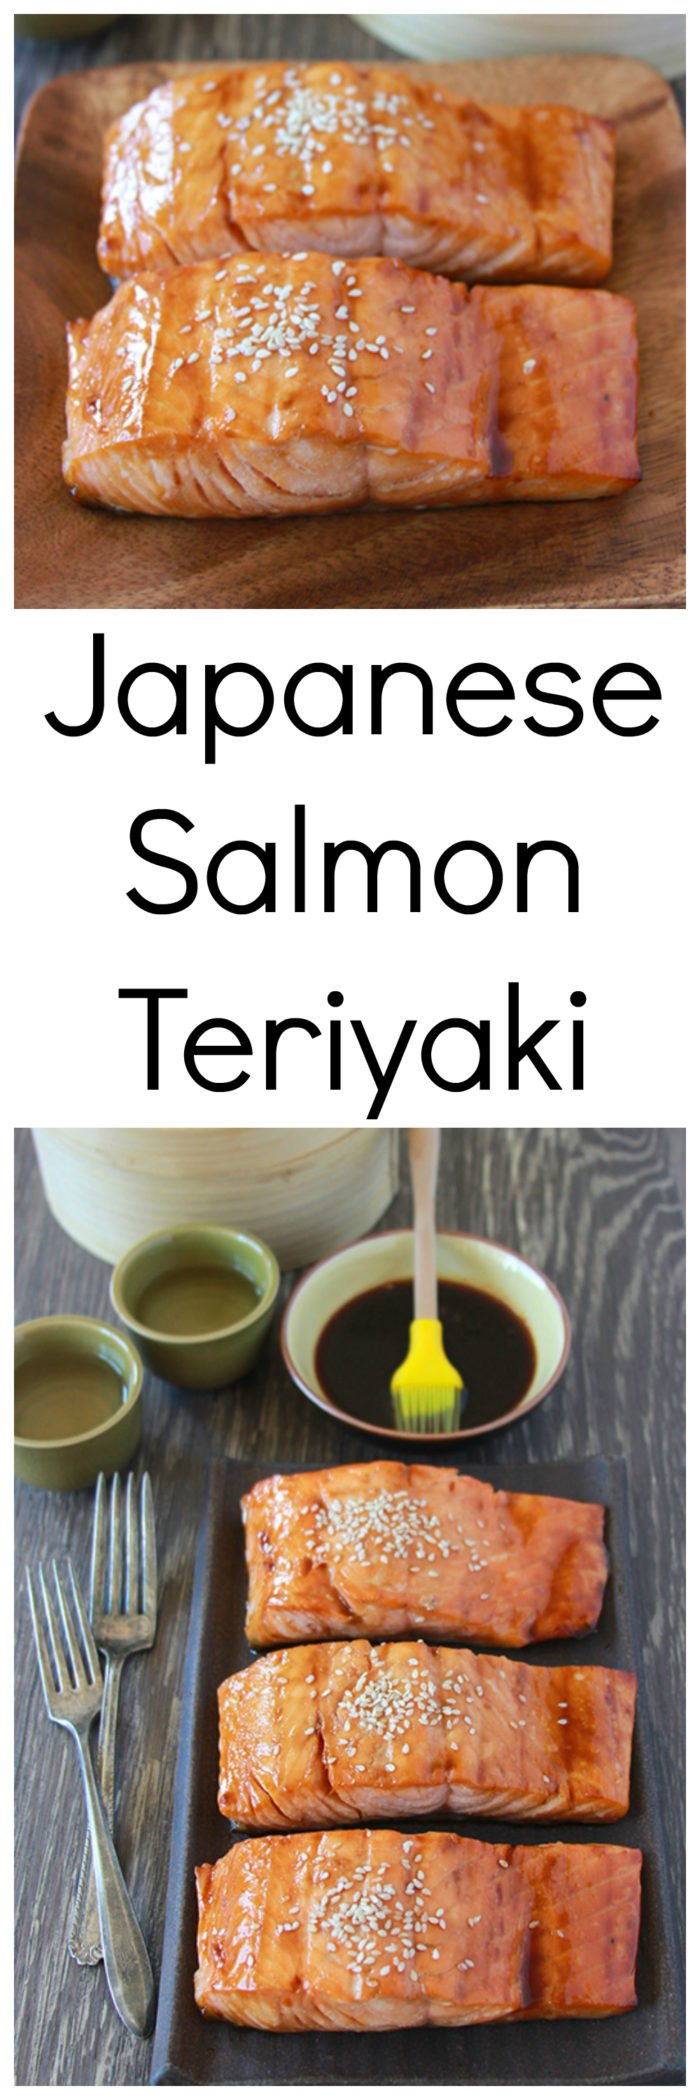 Our Japanese Salmon Teriyaki Recipe is an authentic recipe from Japan it's so simple to make and has such amazing favor~ every bite is rich, buttery, and decadent! by cookingwithruthie.com